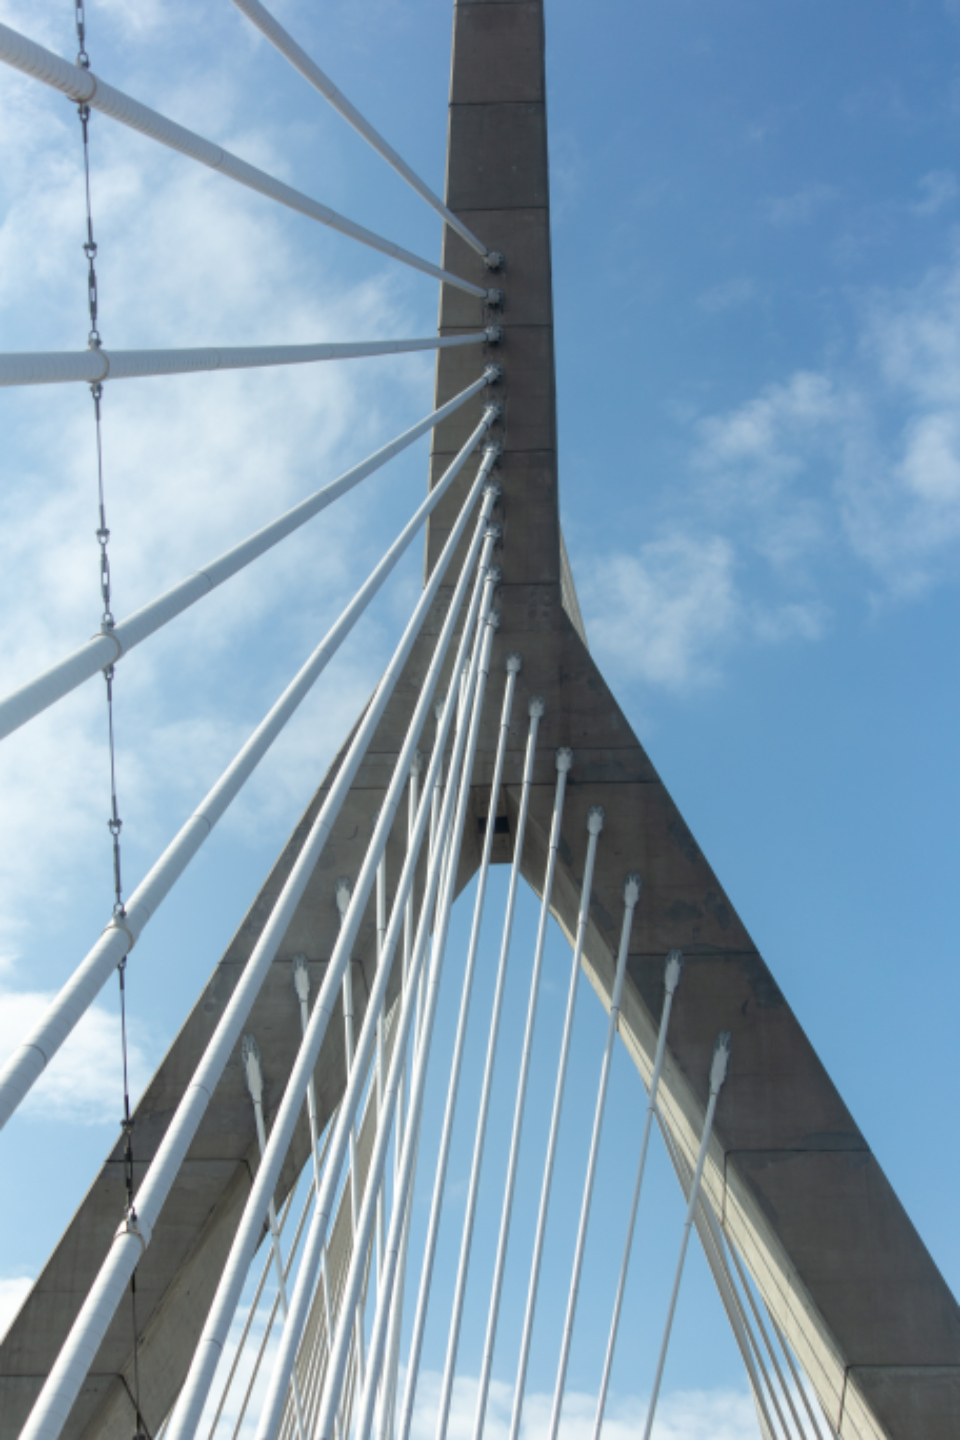 bridge abstract city angle architecture structure modern cable lines tower sky clouds design travel